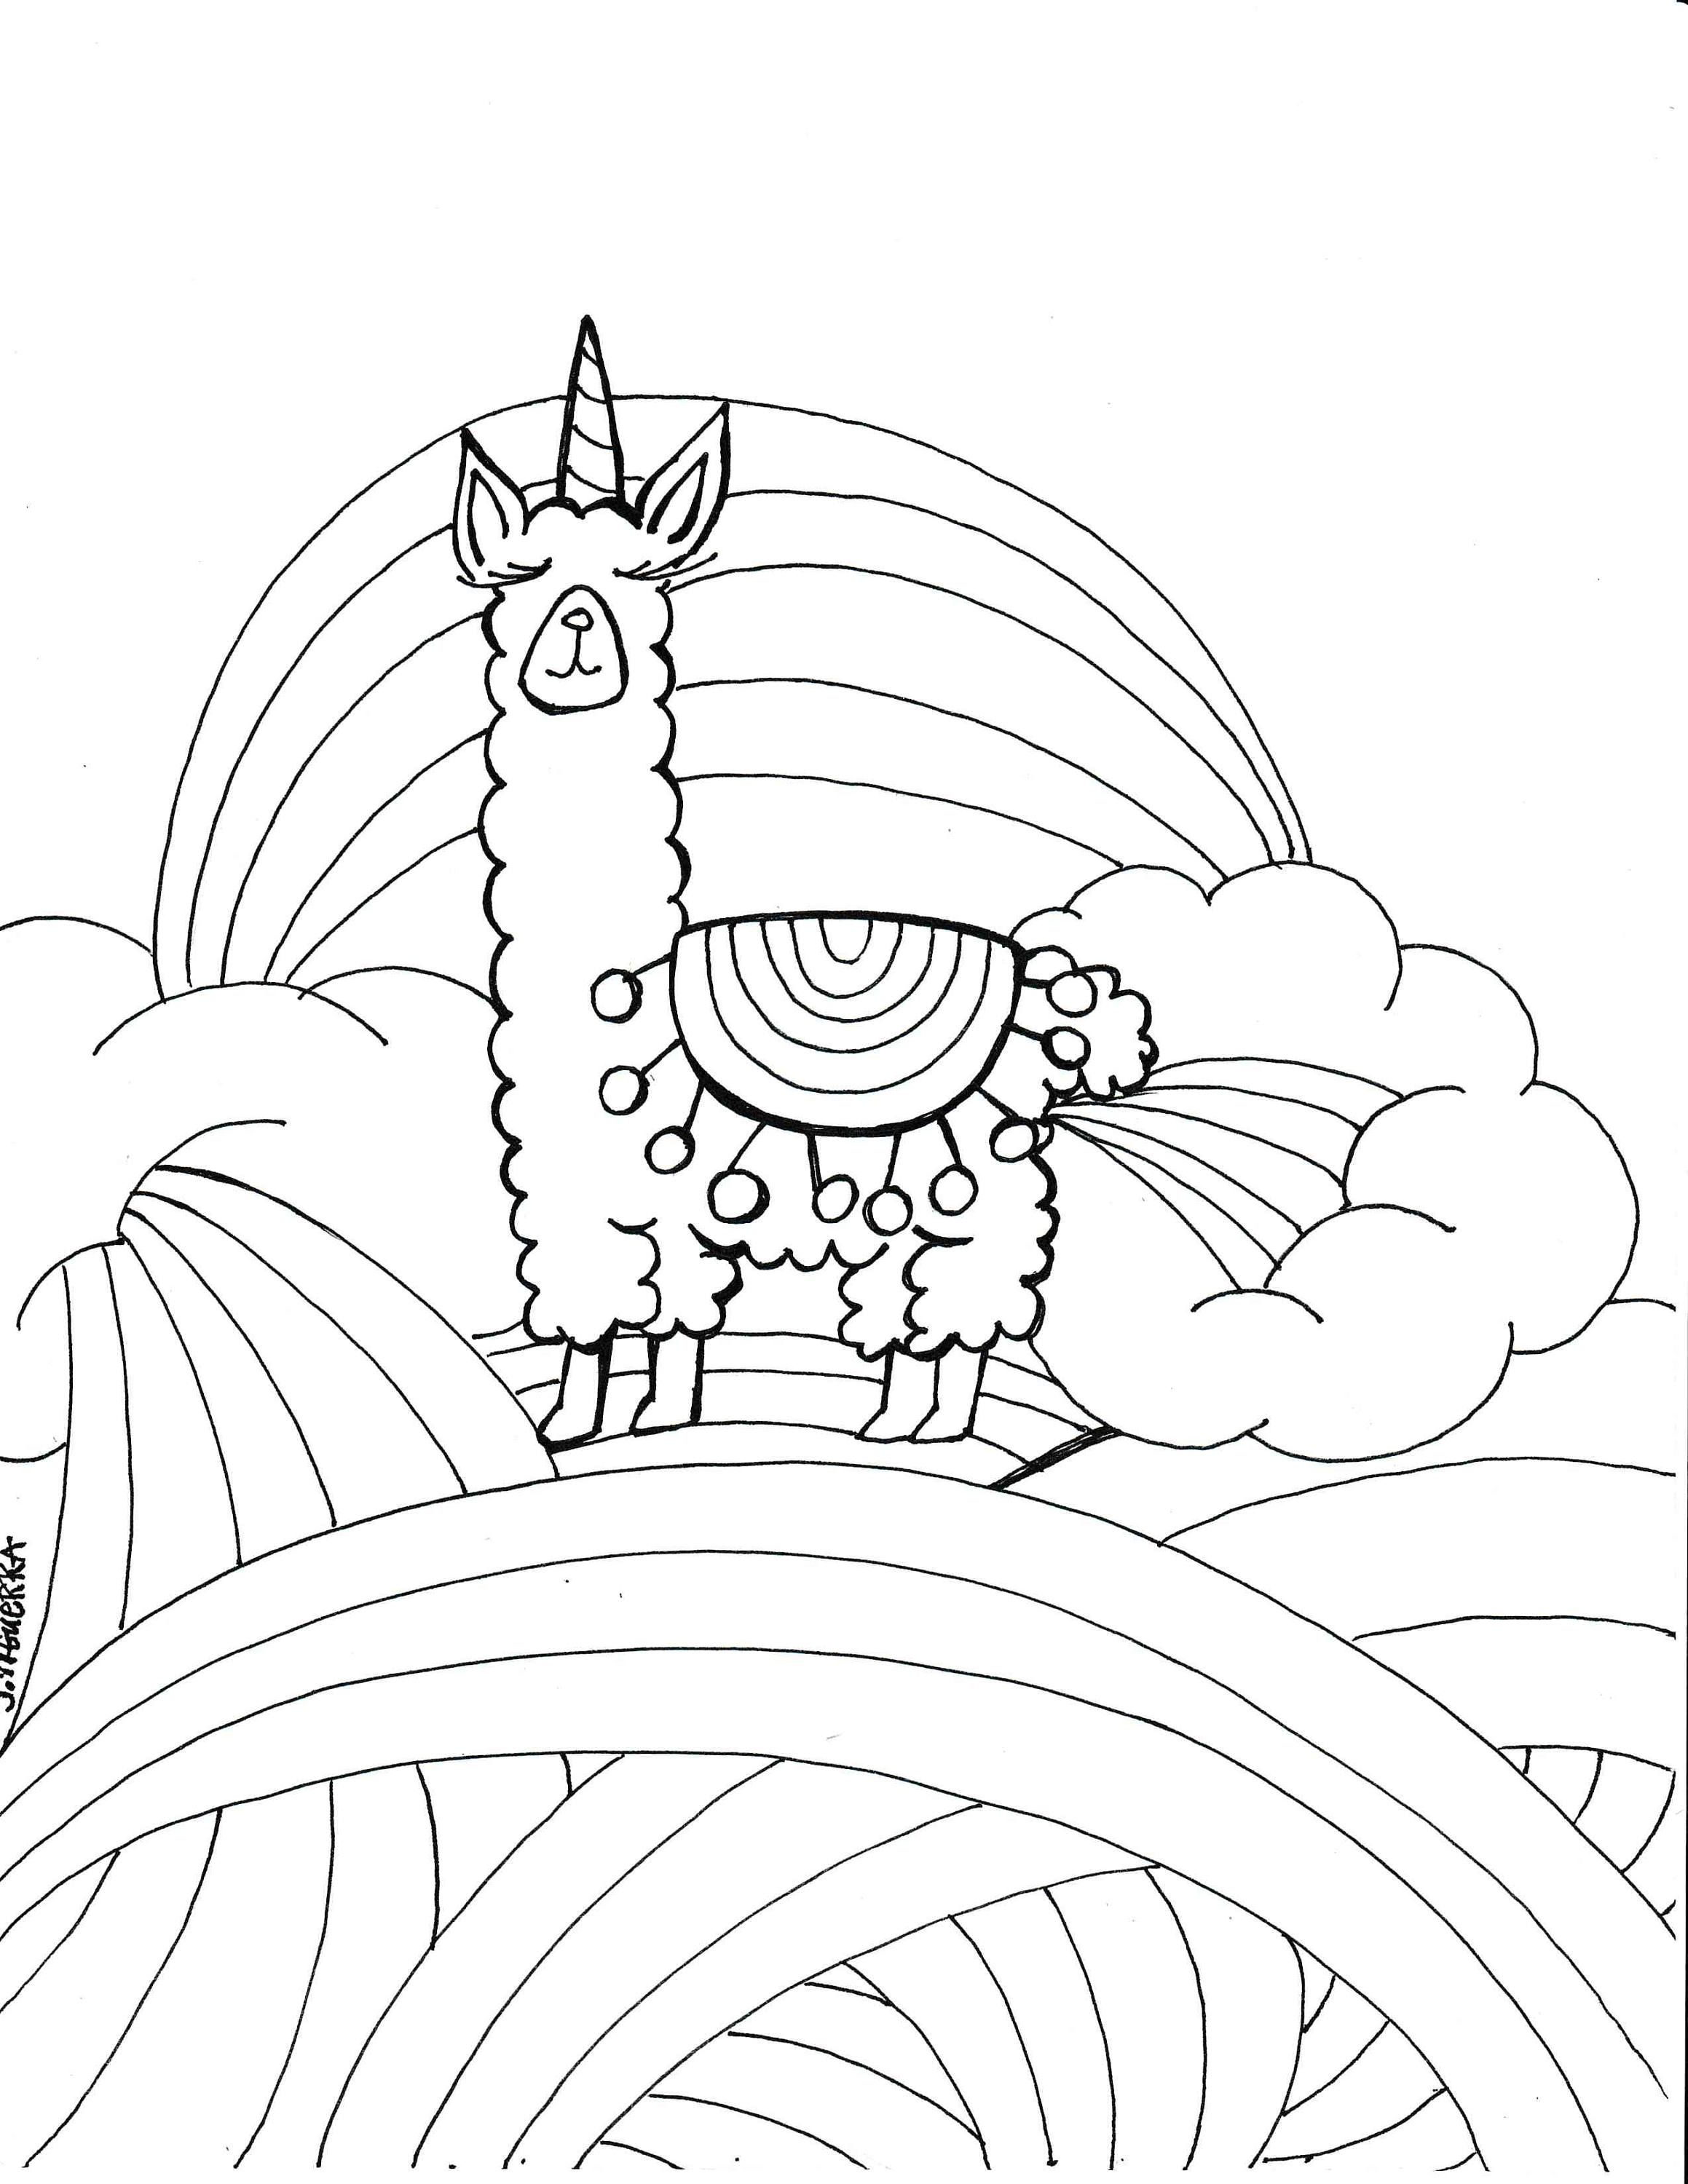 Christmas Coloring Pages For Intermediate Students With Llamacorn Page PDF Printable Art Parties Pinterest